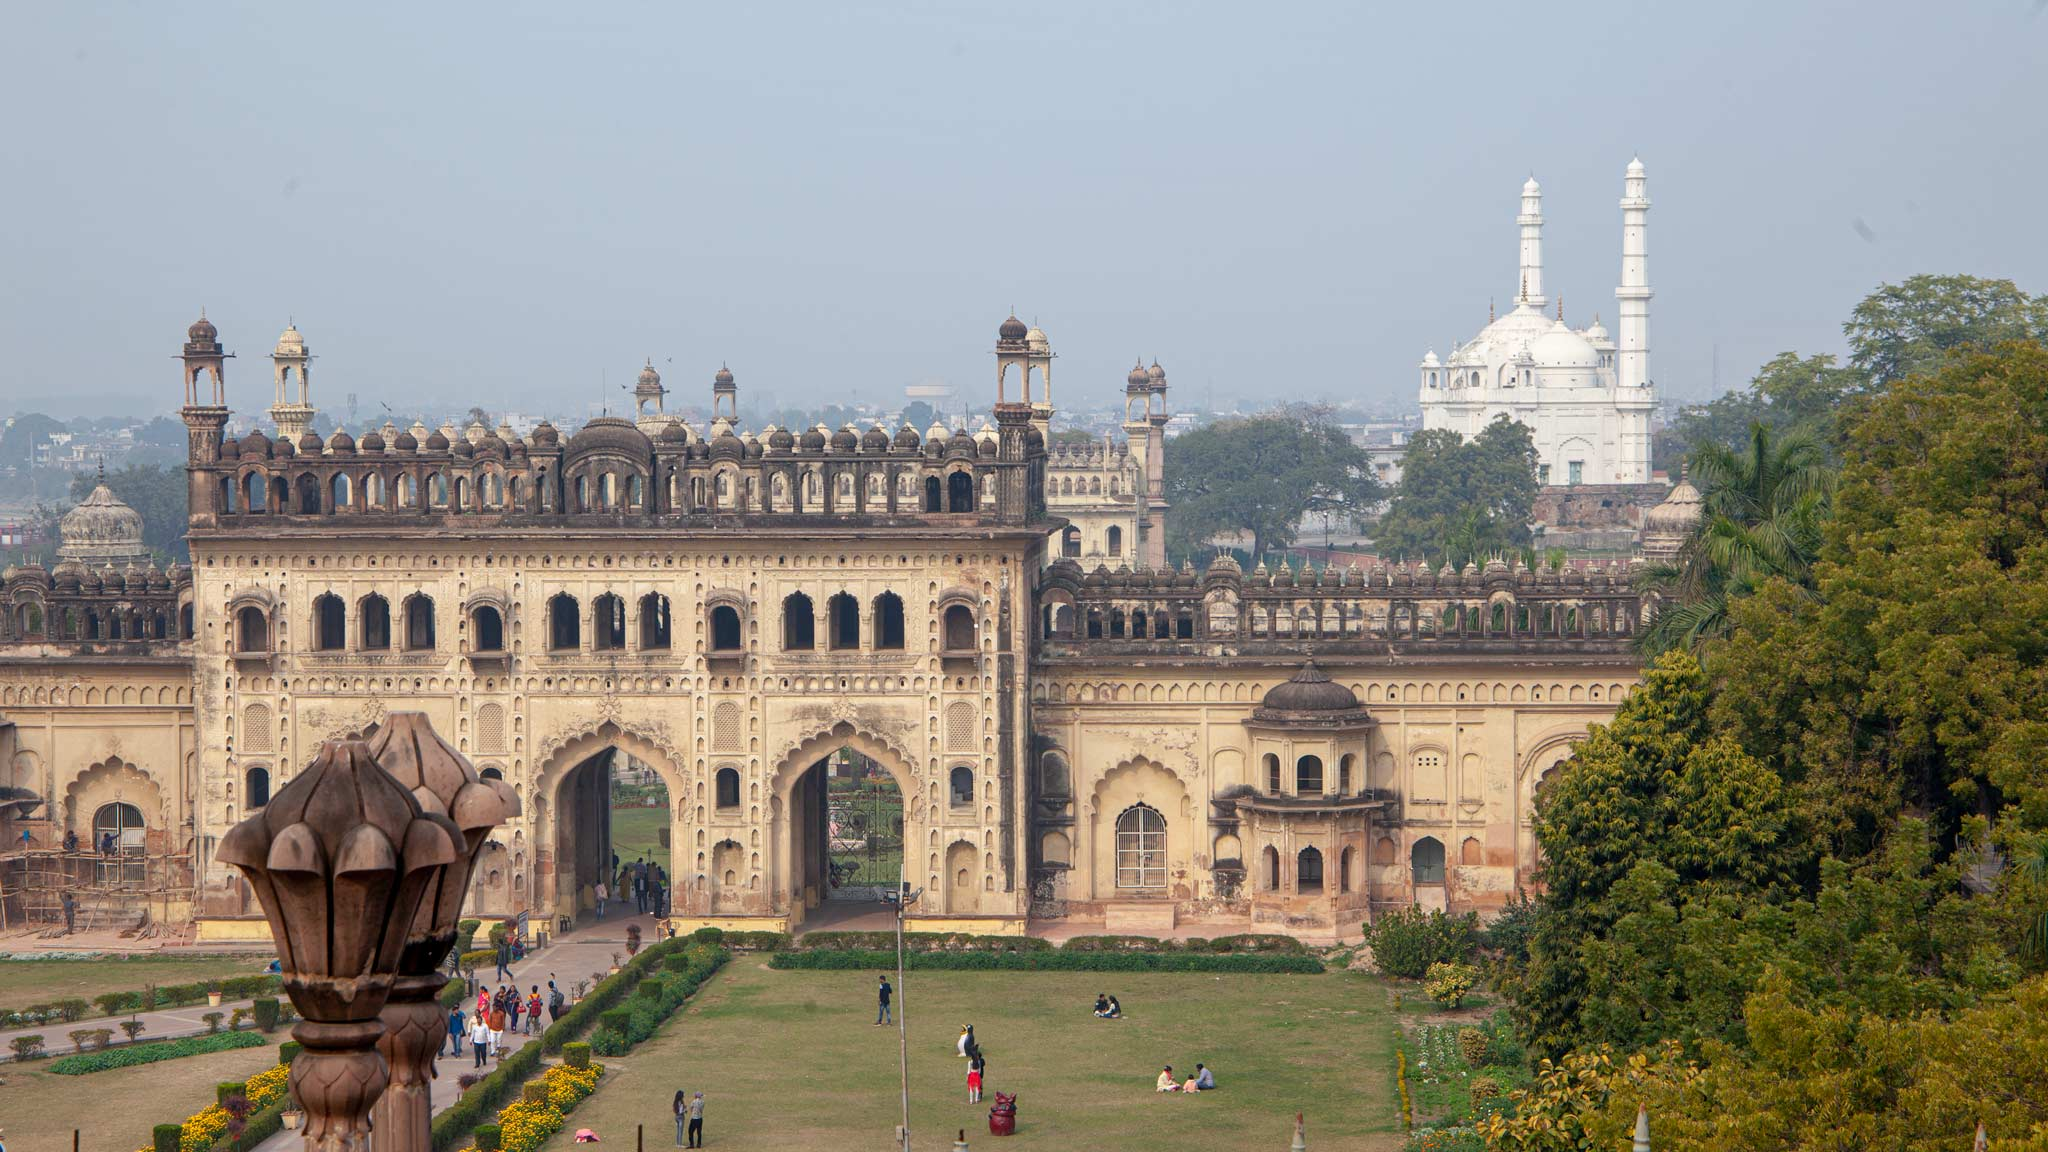 The Bara Imambara main entrance is a large building in Lucknow with archways, in the distance is a white mosque